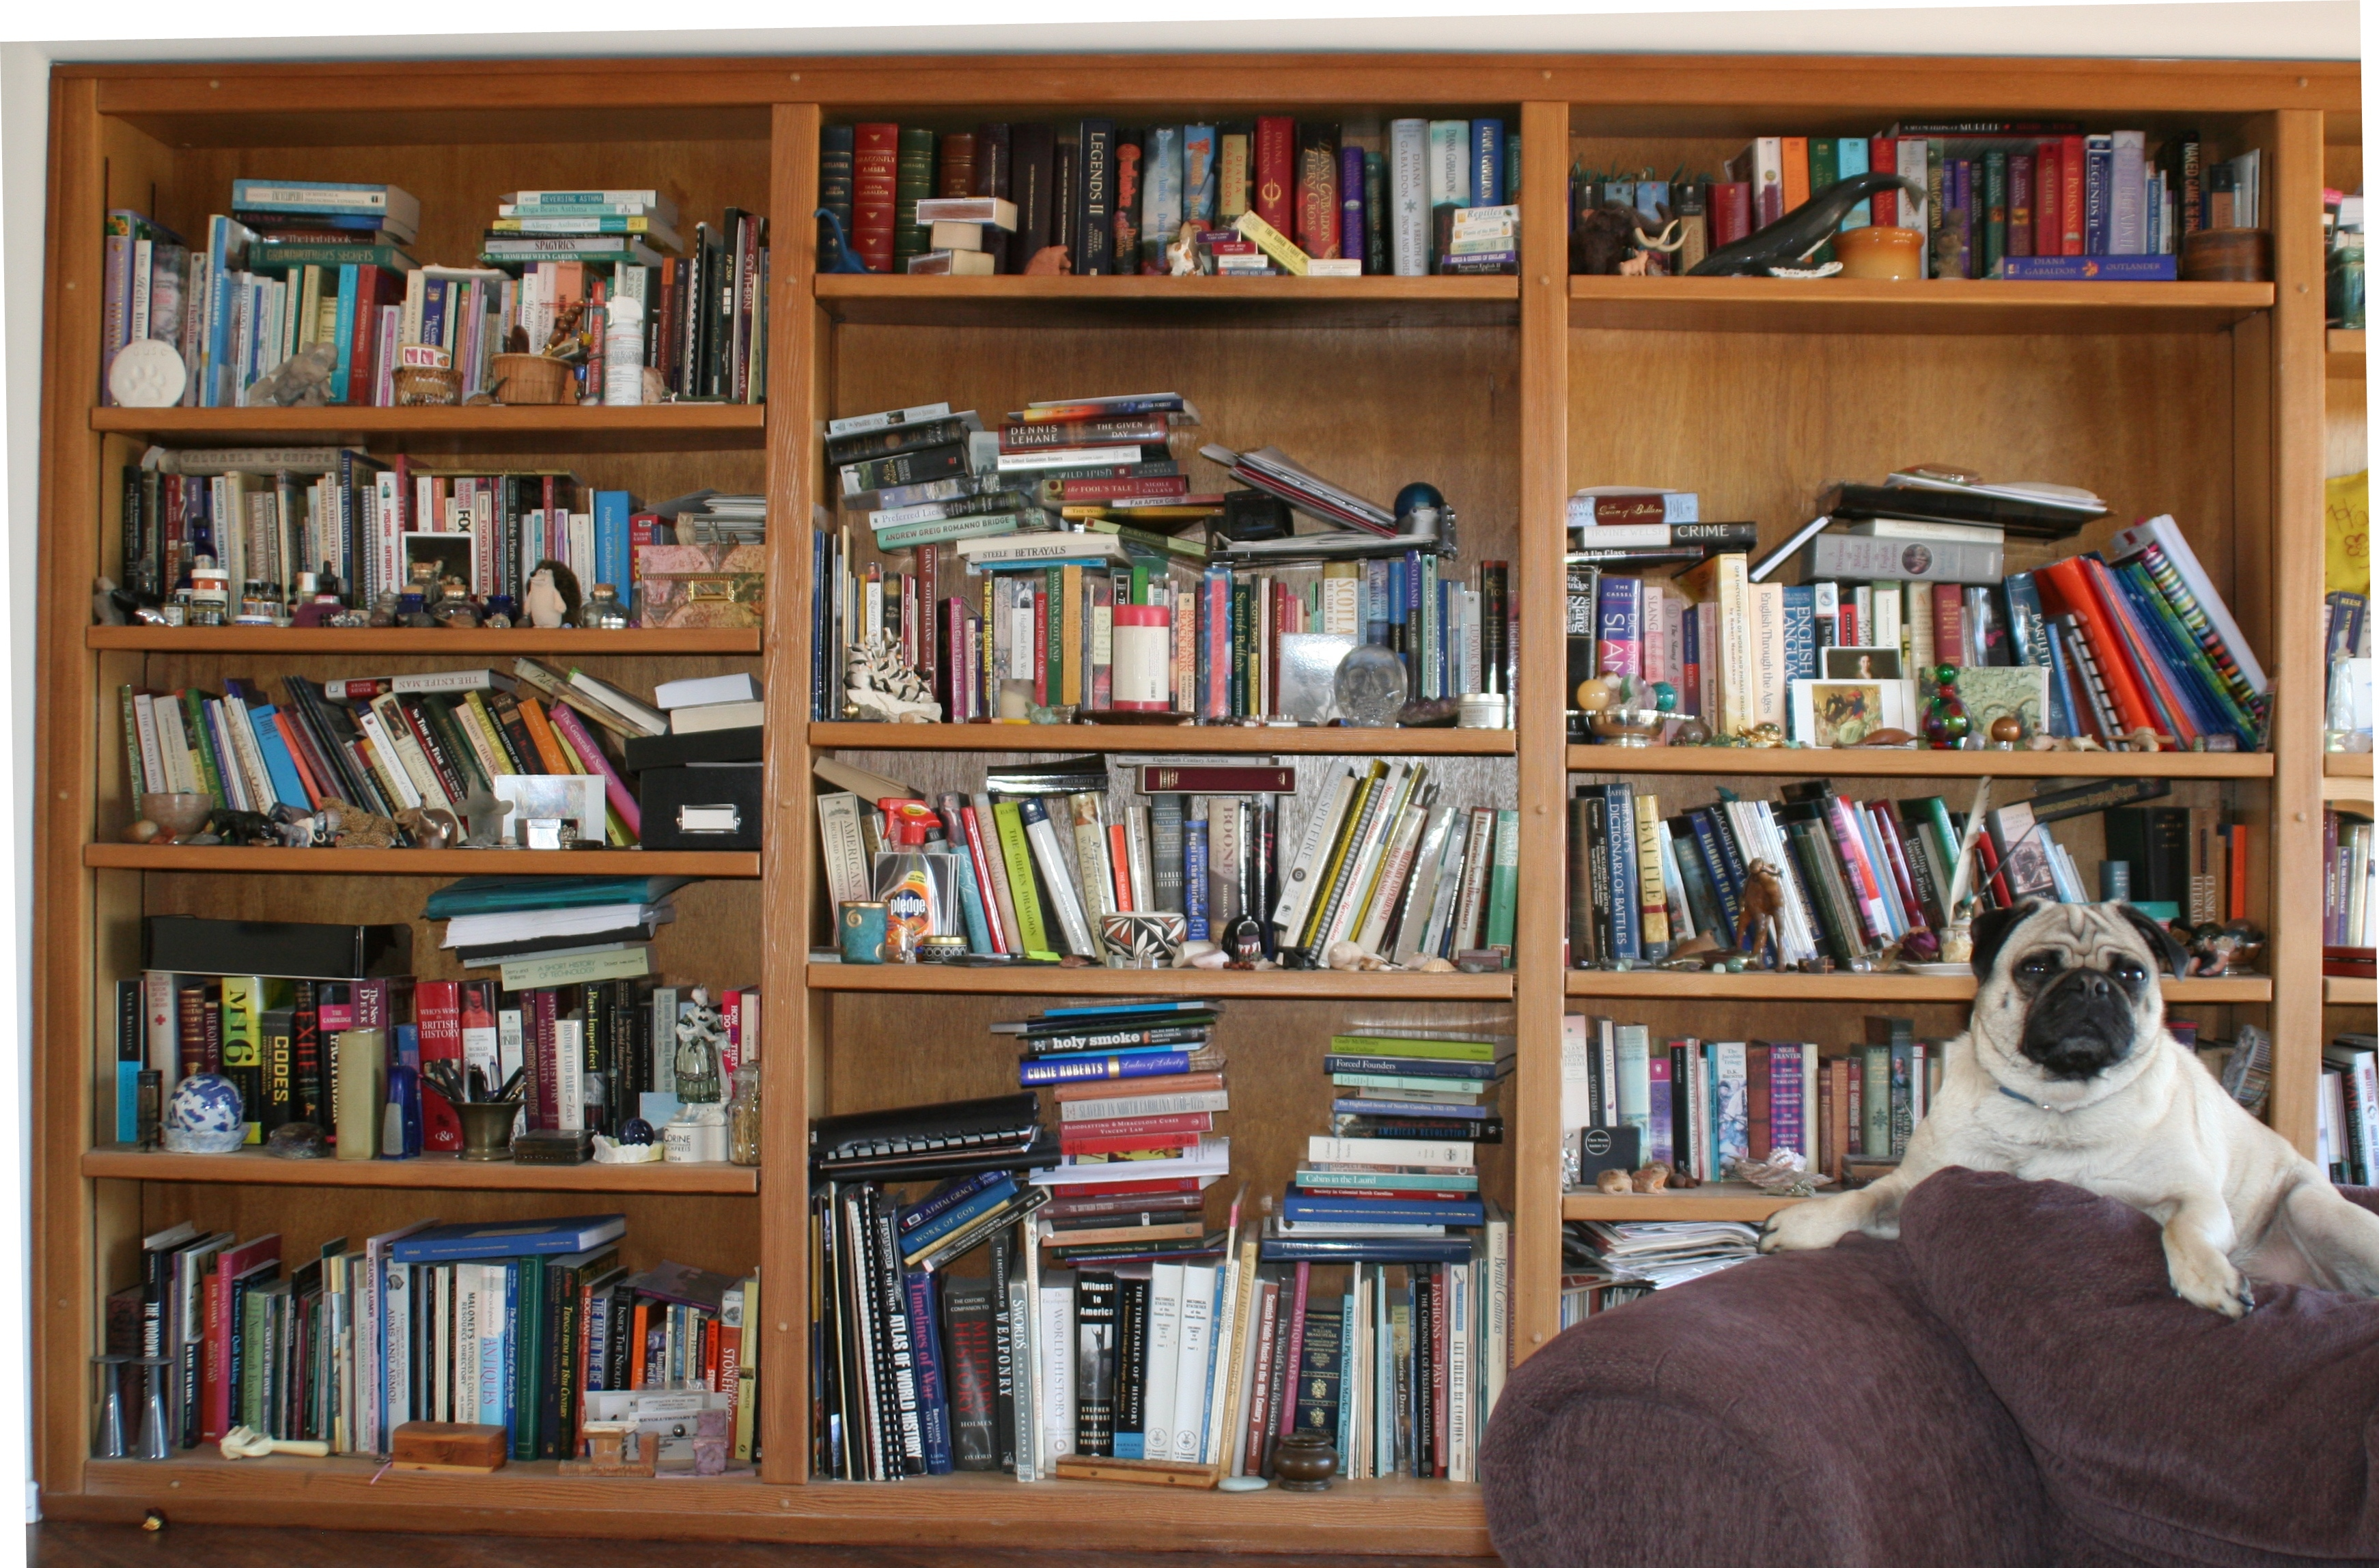 Diana Gabaldon's bookcase, Used by Permission